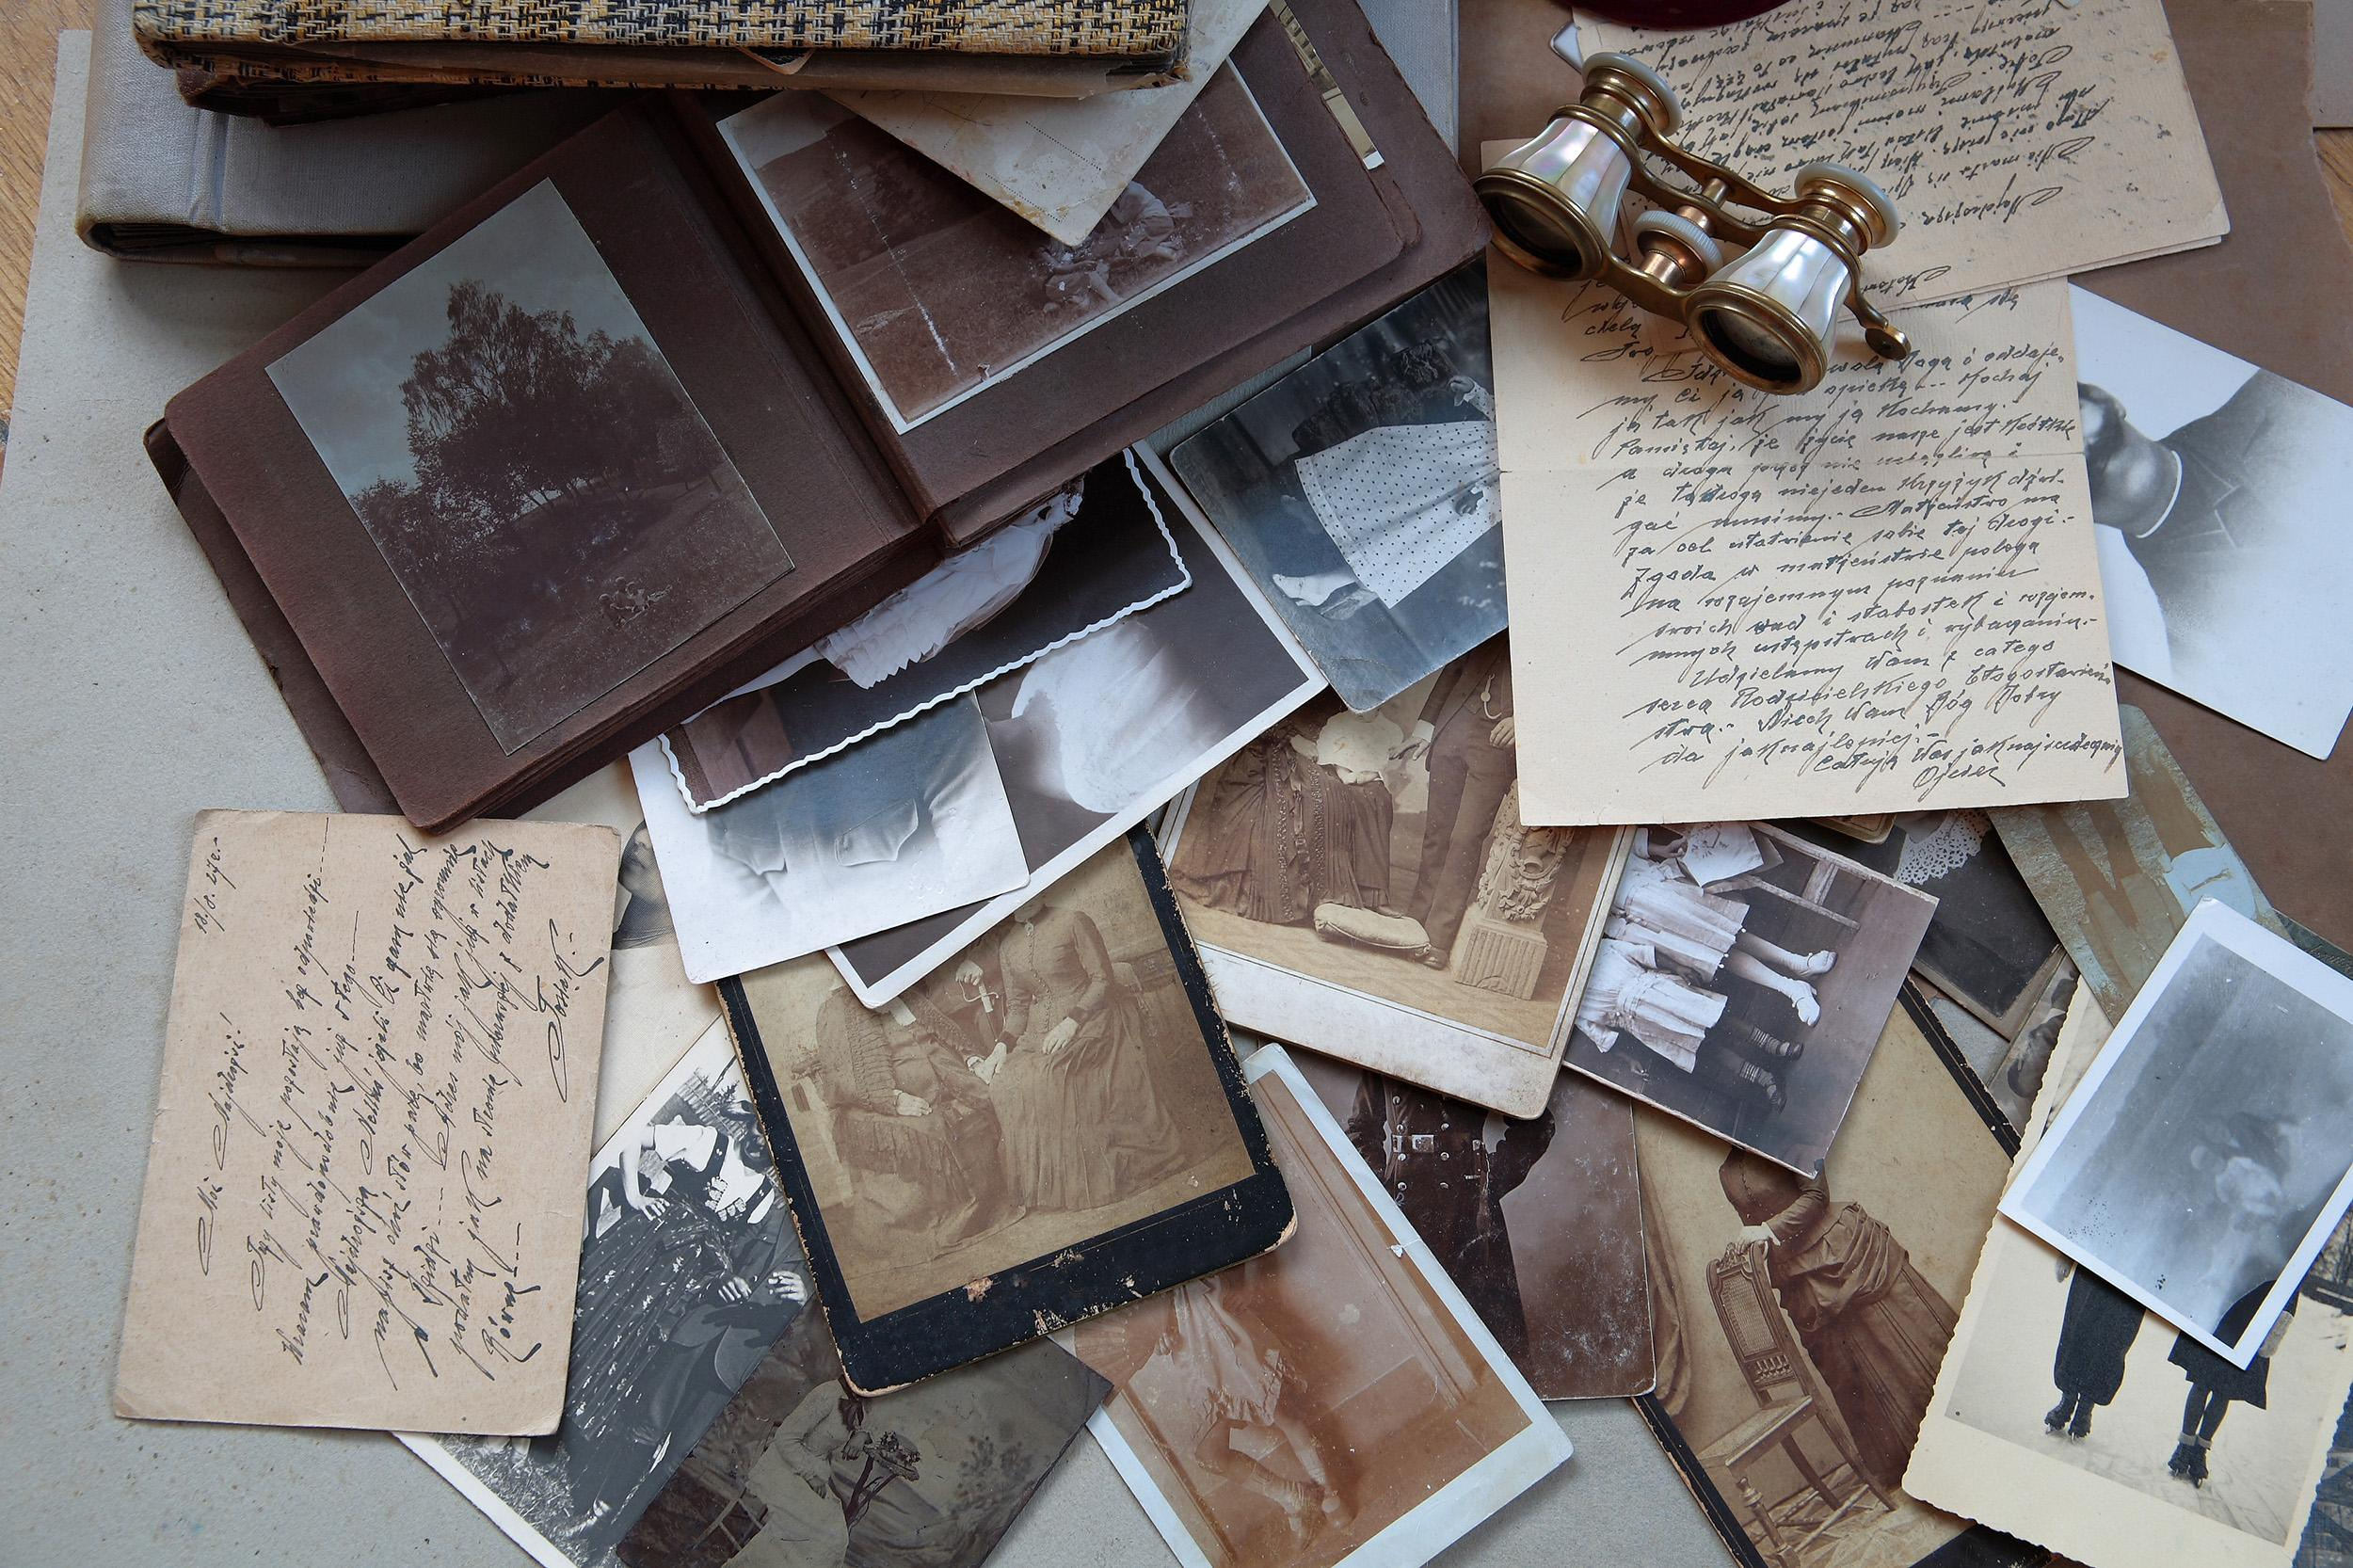 A collection of precious mementos such as photo albums, birthday cards, and framed pictures